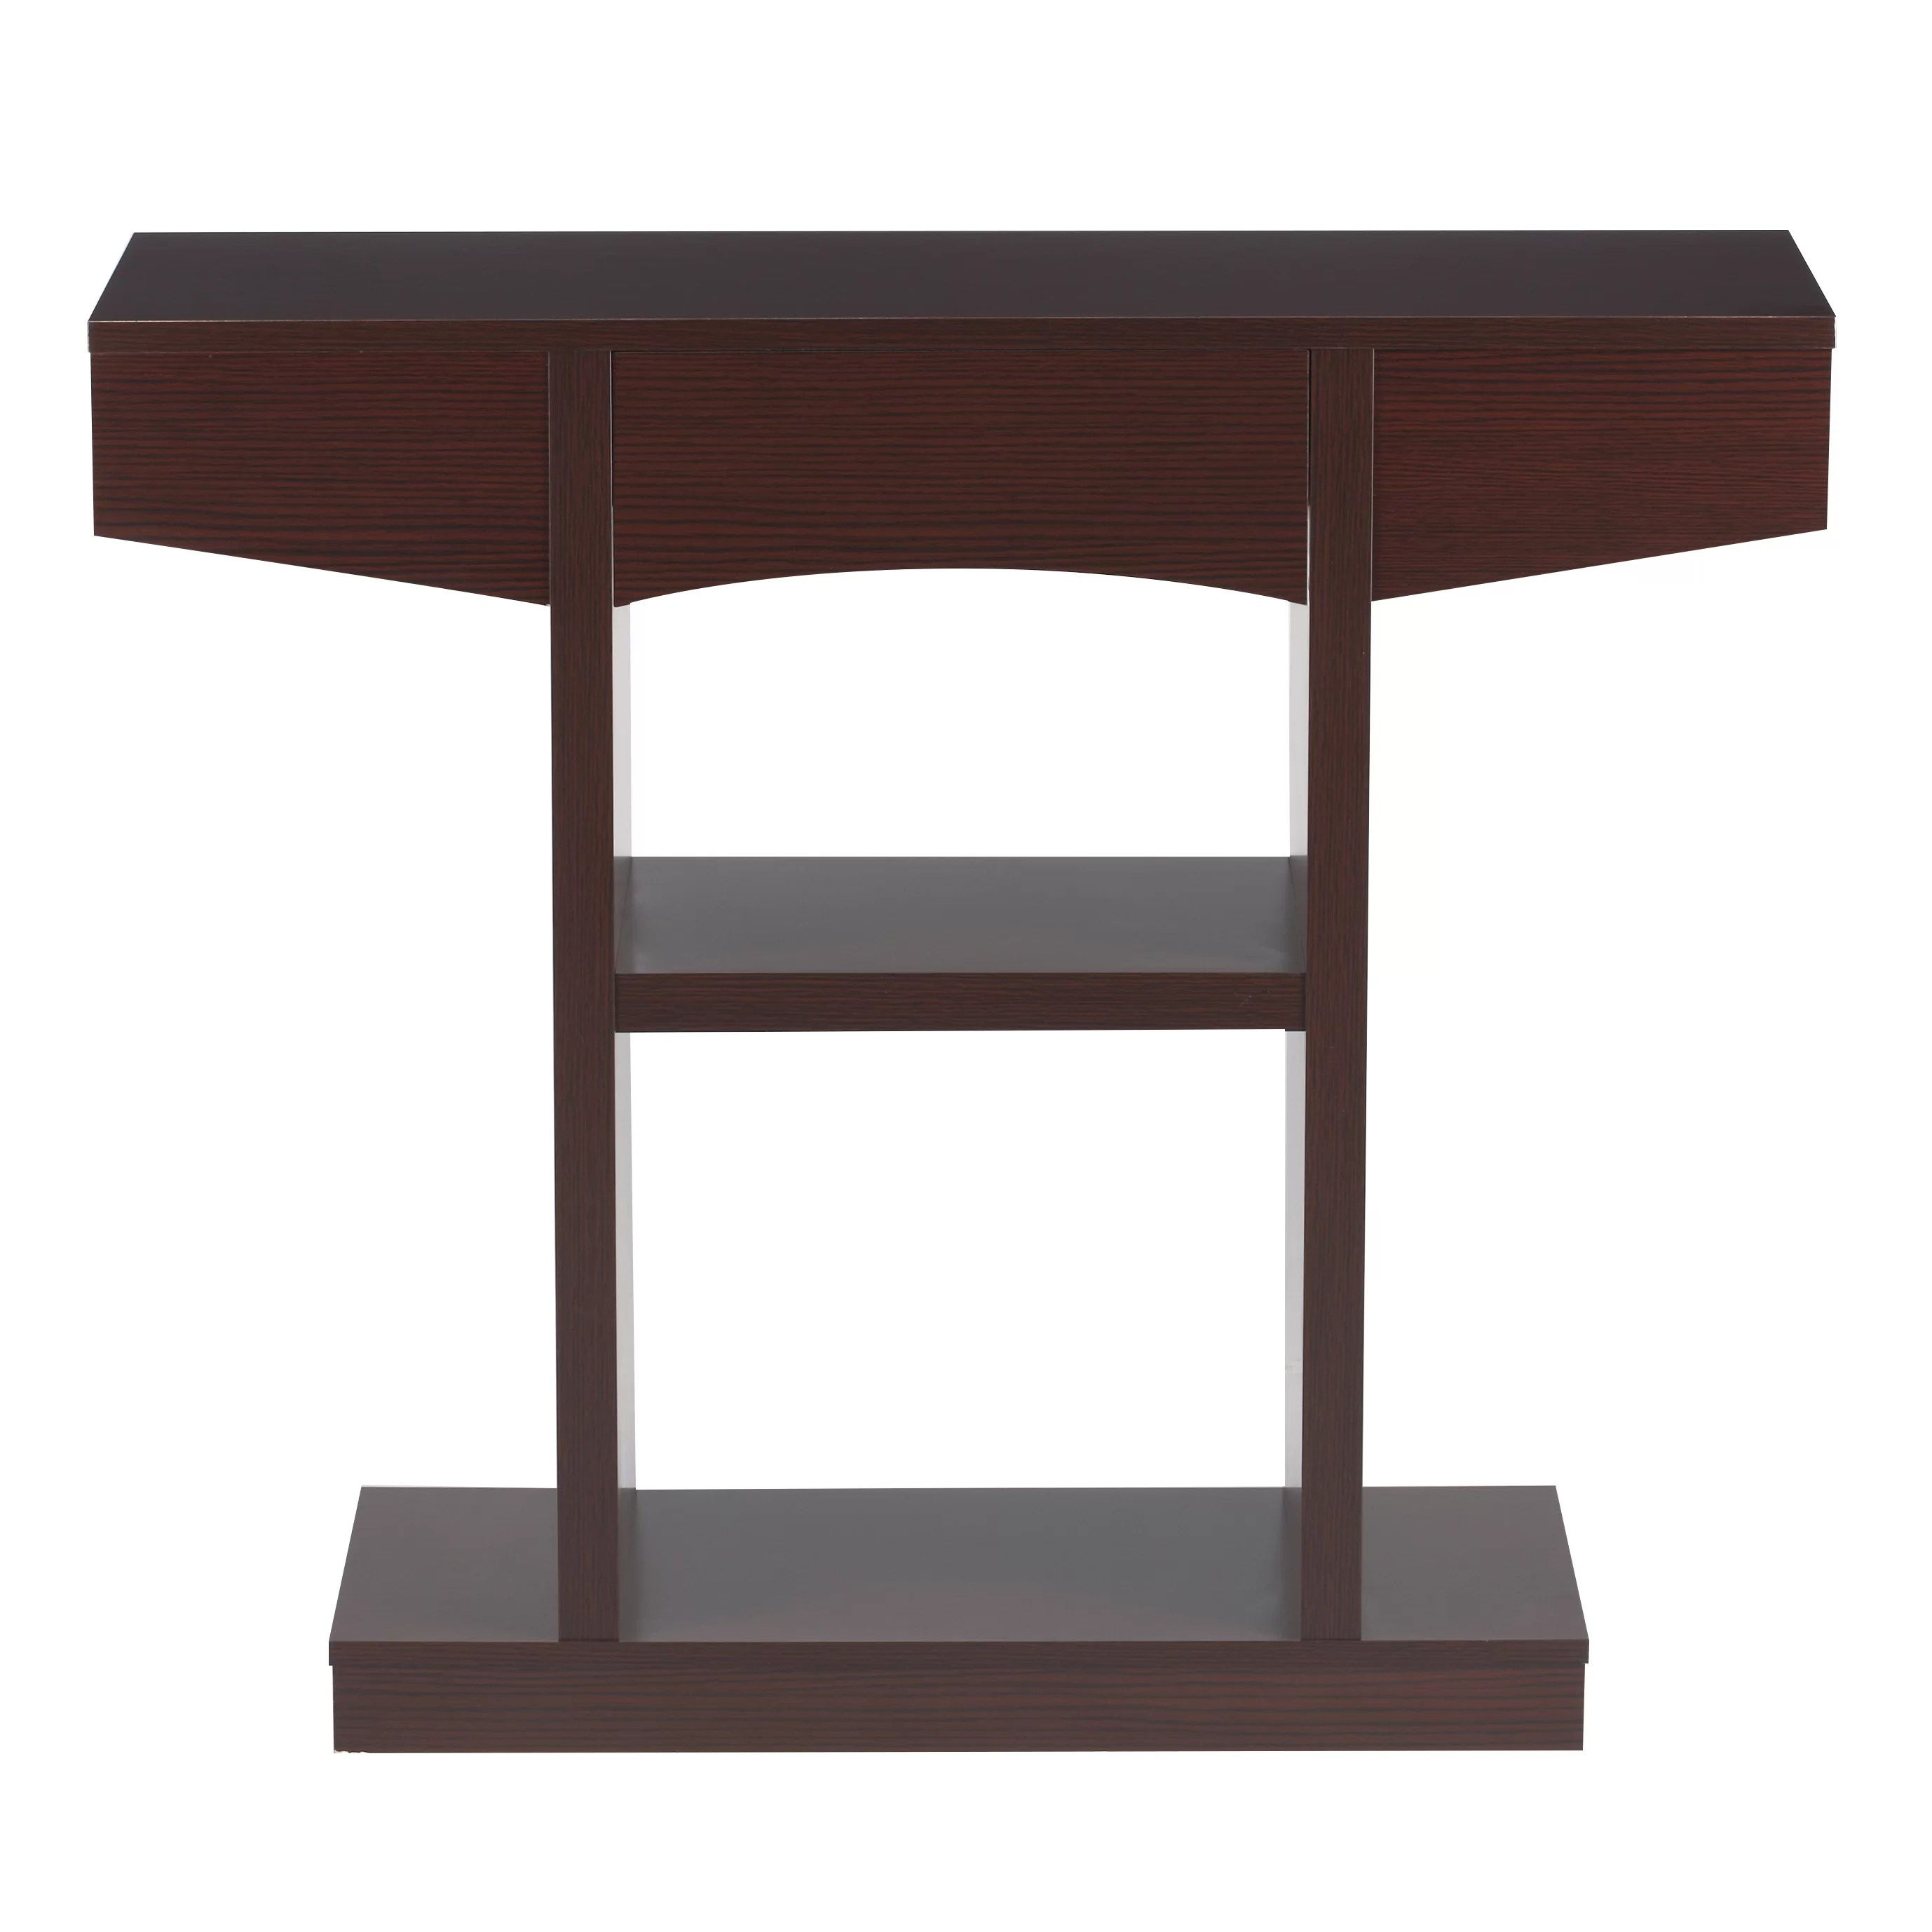 wayfair furniture sofa tables sets in india designs hokku corinthe hallway console table and reviews